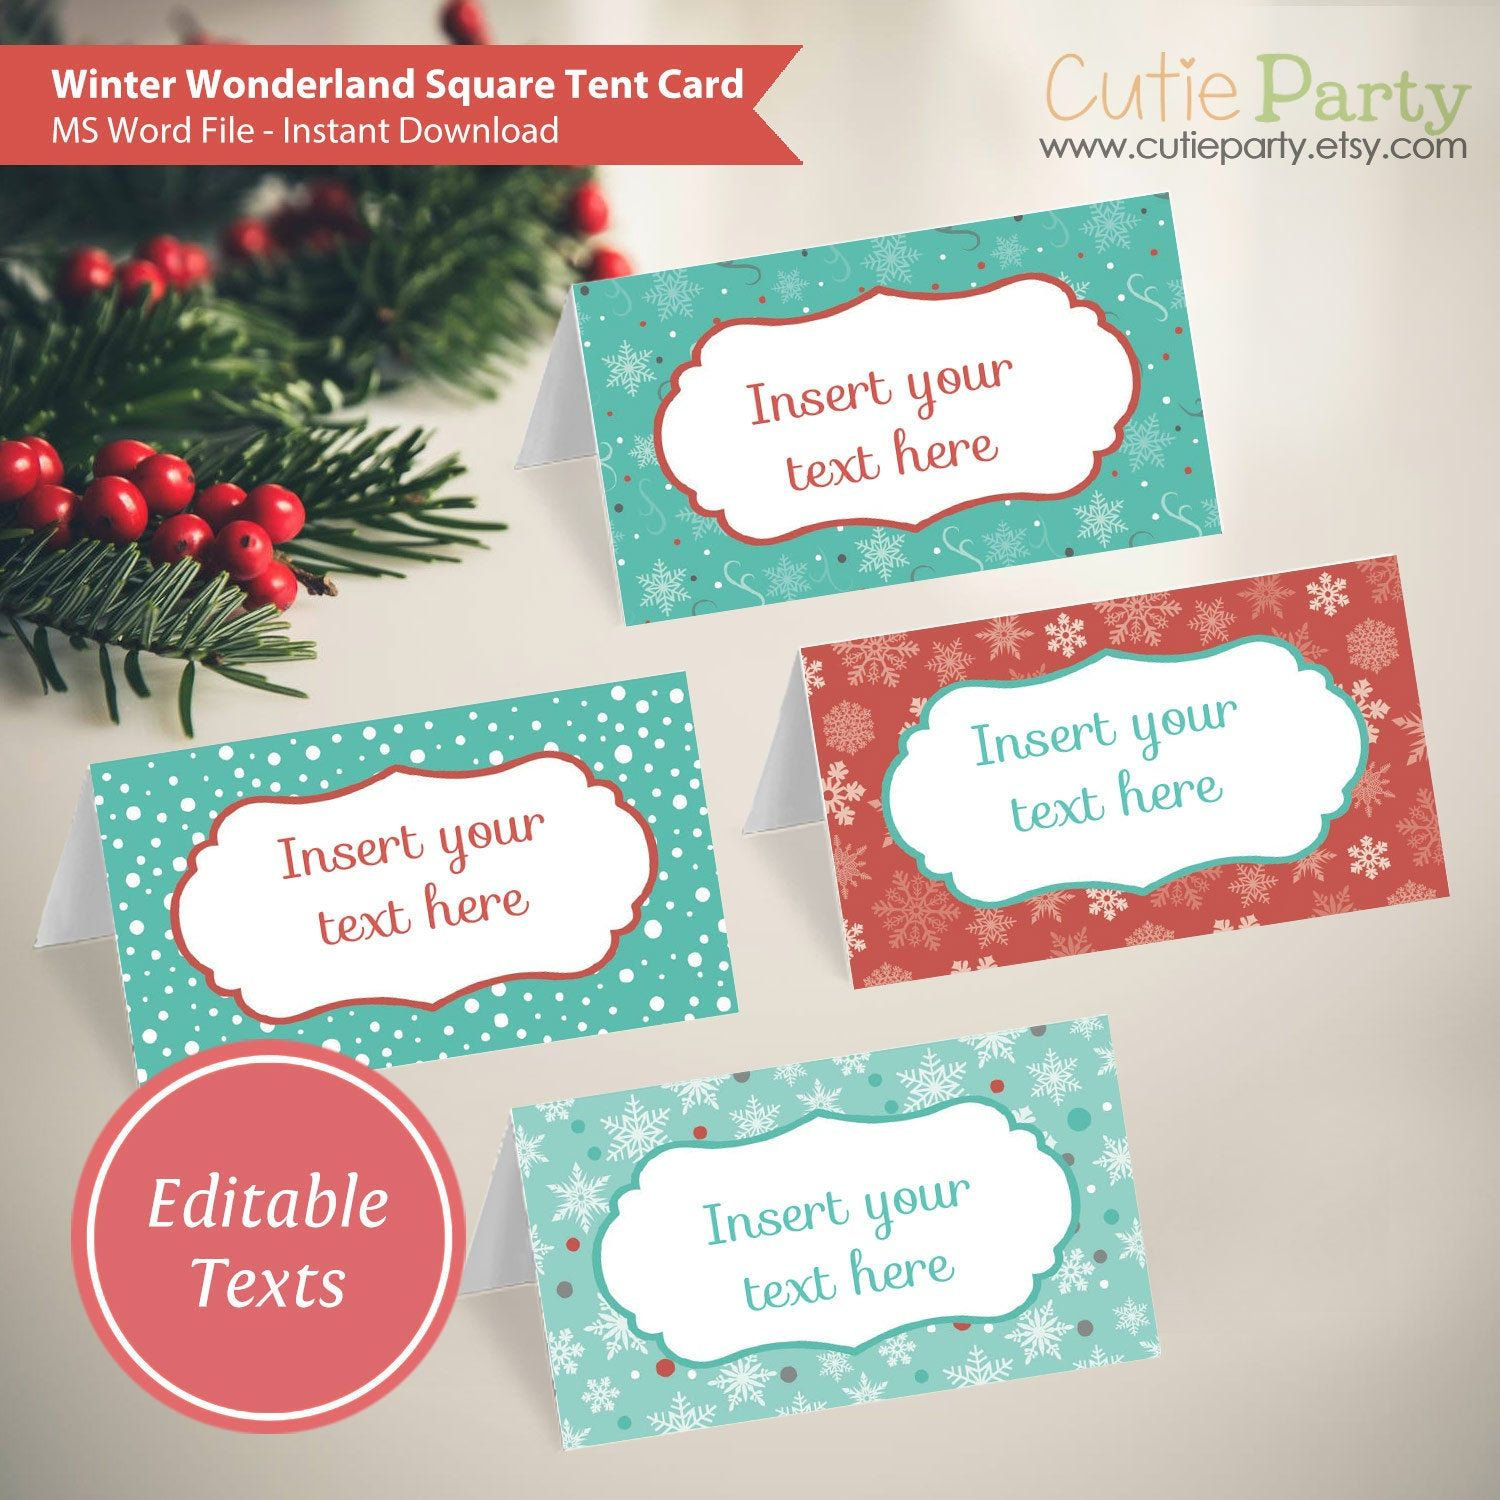 Winter Wonderland Tent Card Christmas Party Printable Winter Holiday Editable Tent Card Food Label Template Food Label Template Tent Cards Winter Wonderland